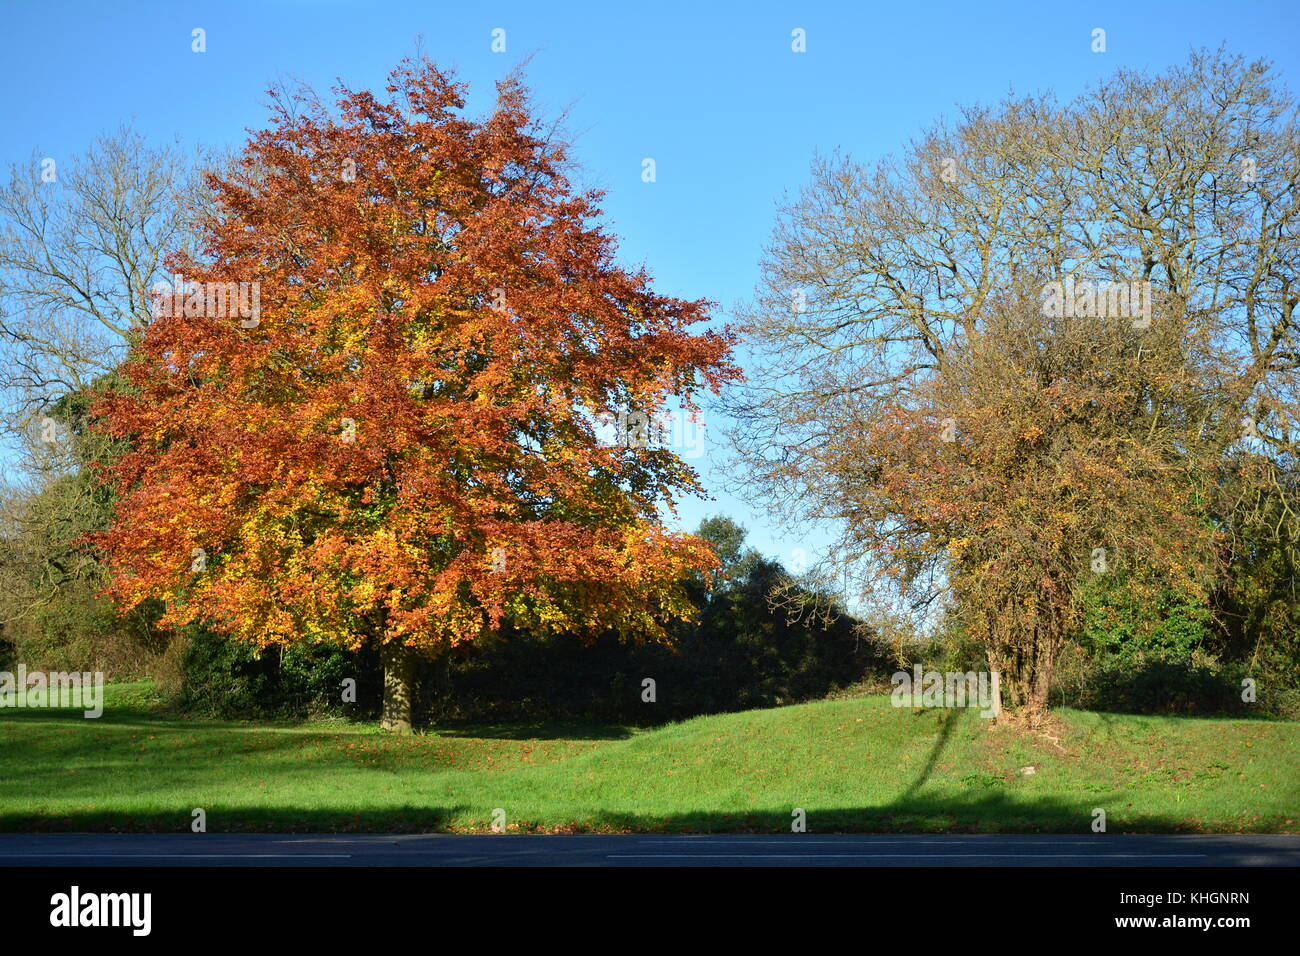 Bristol, UK. 17th Nov, 2017. UK Weather. On a mild day in Bristol a tree stands in a wonderful golden color of leaves. - Stock Image